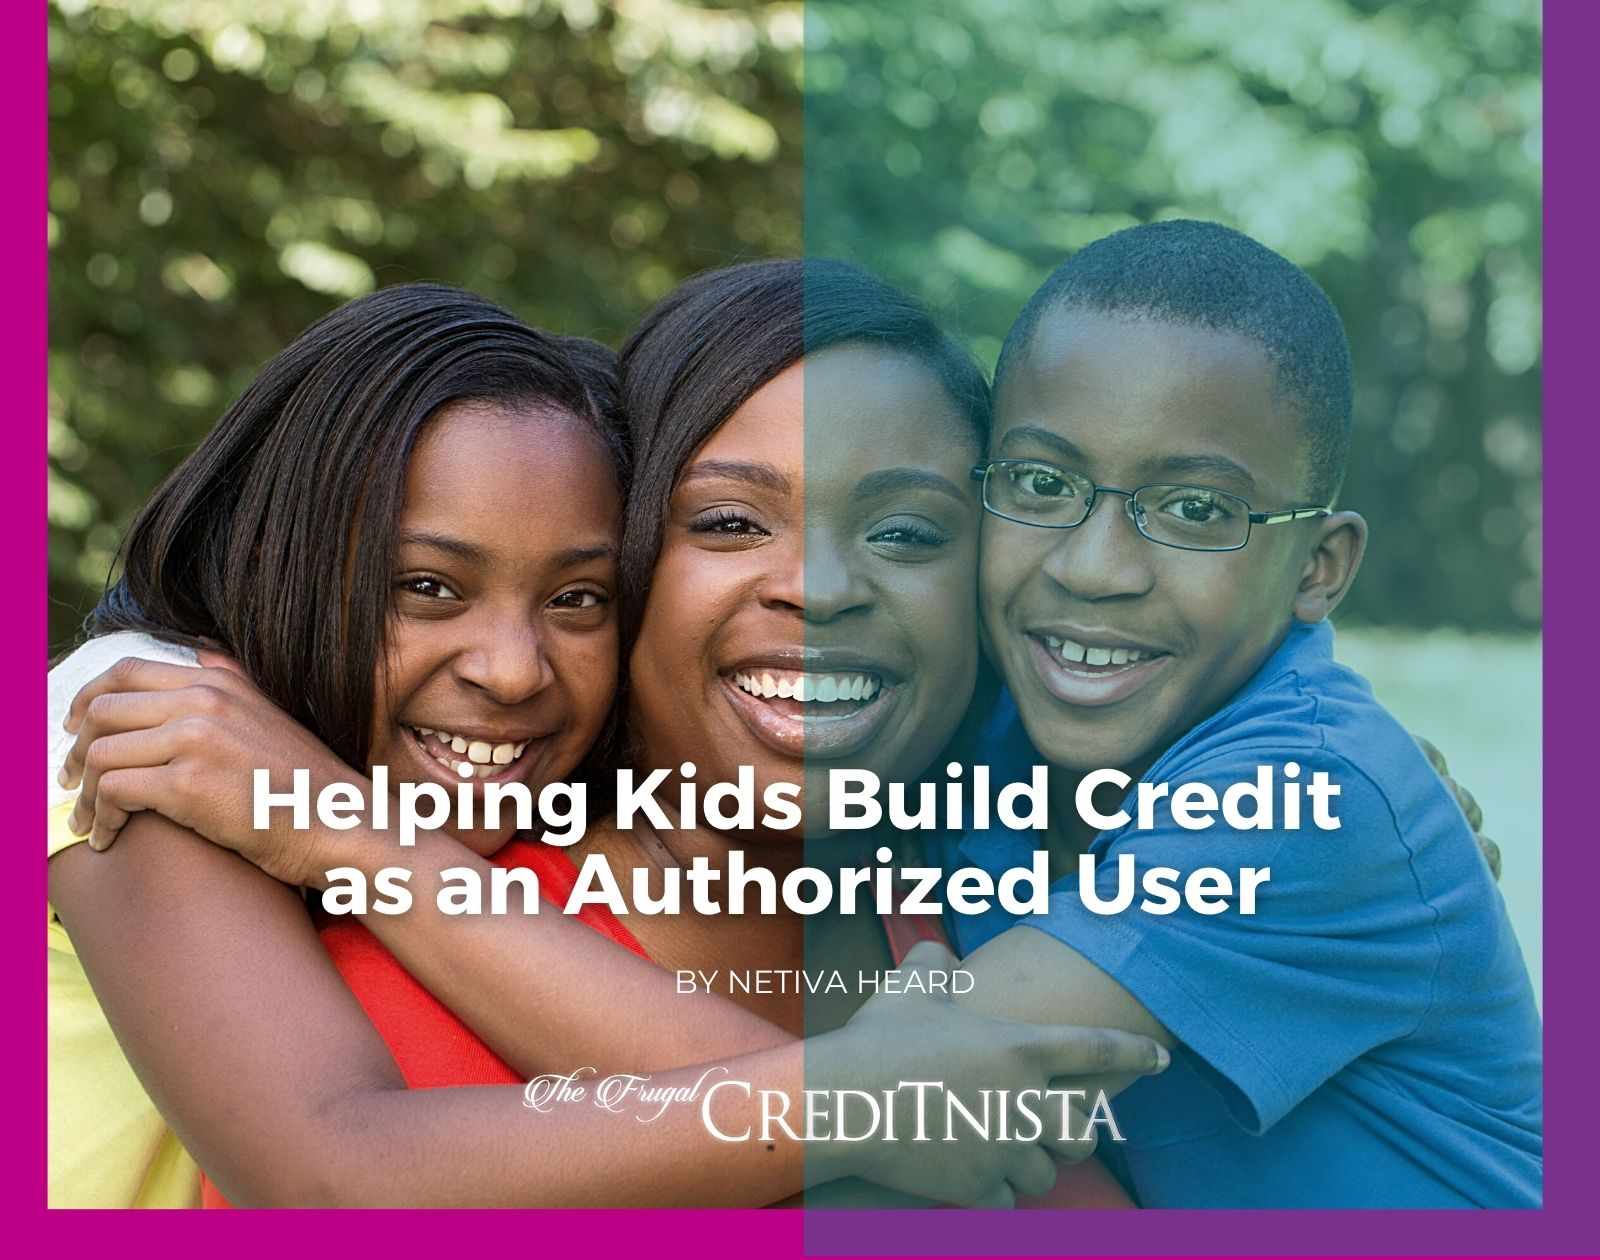 Helping Kids Build Credit as an Authorized User